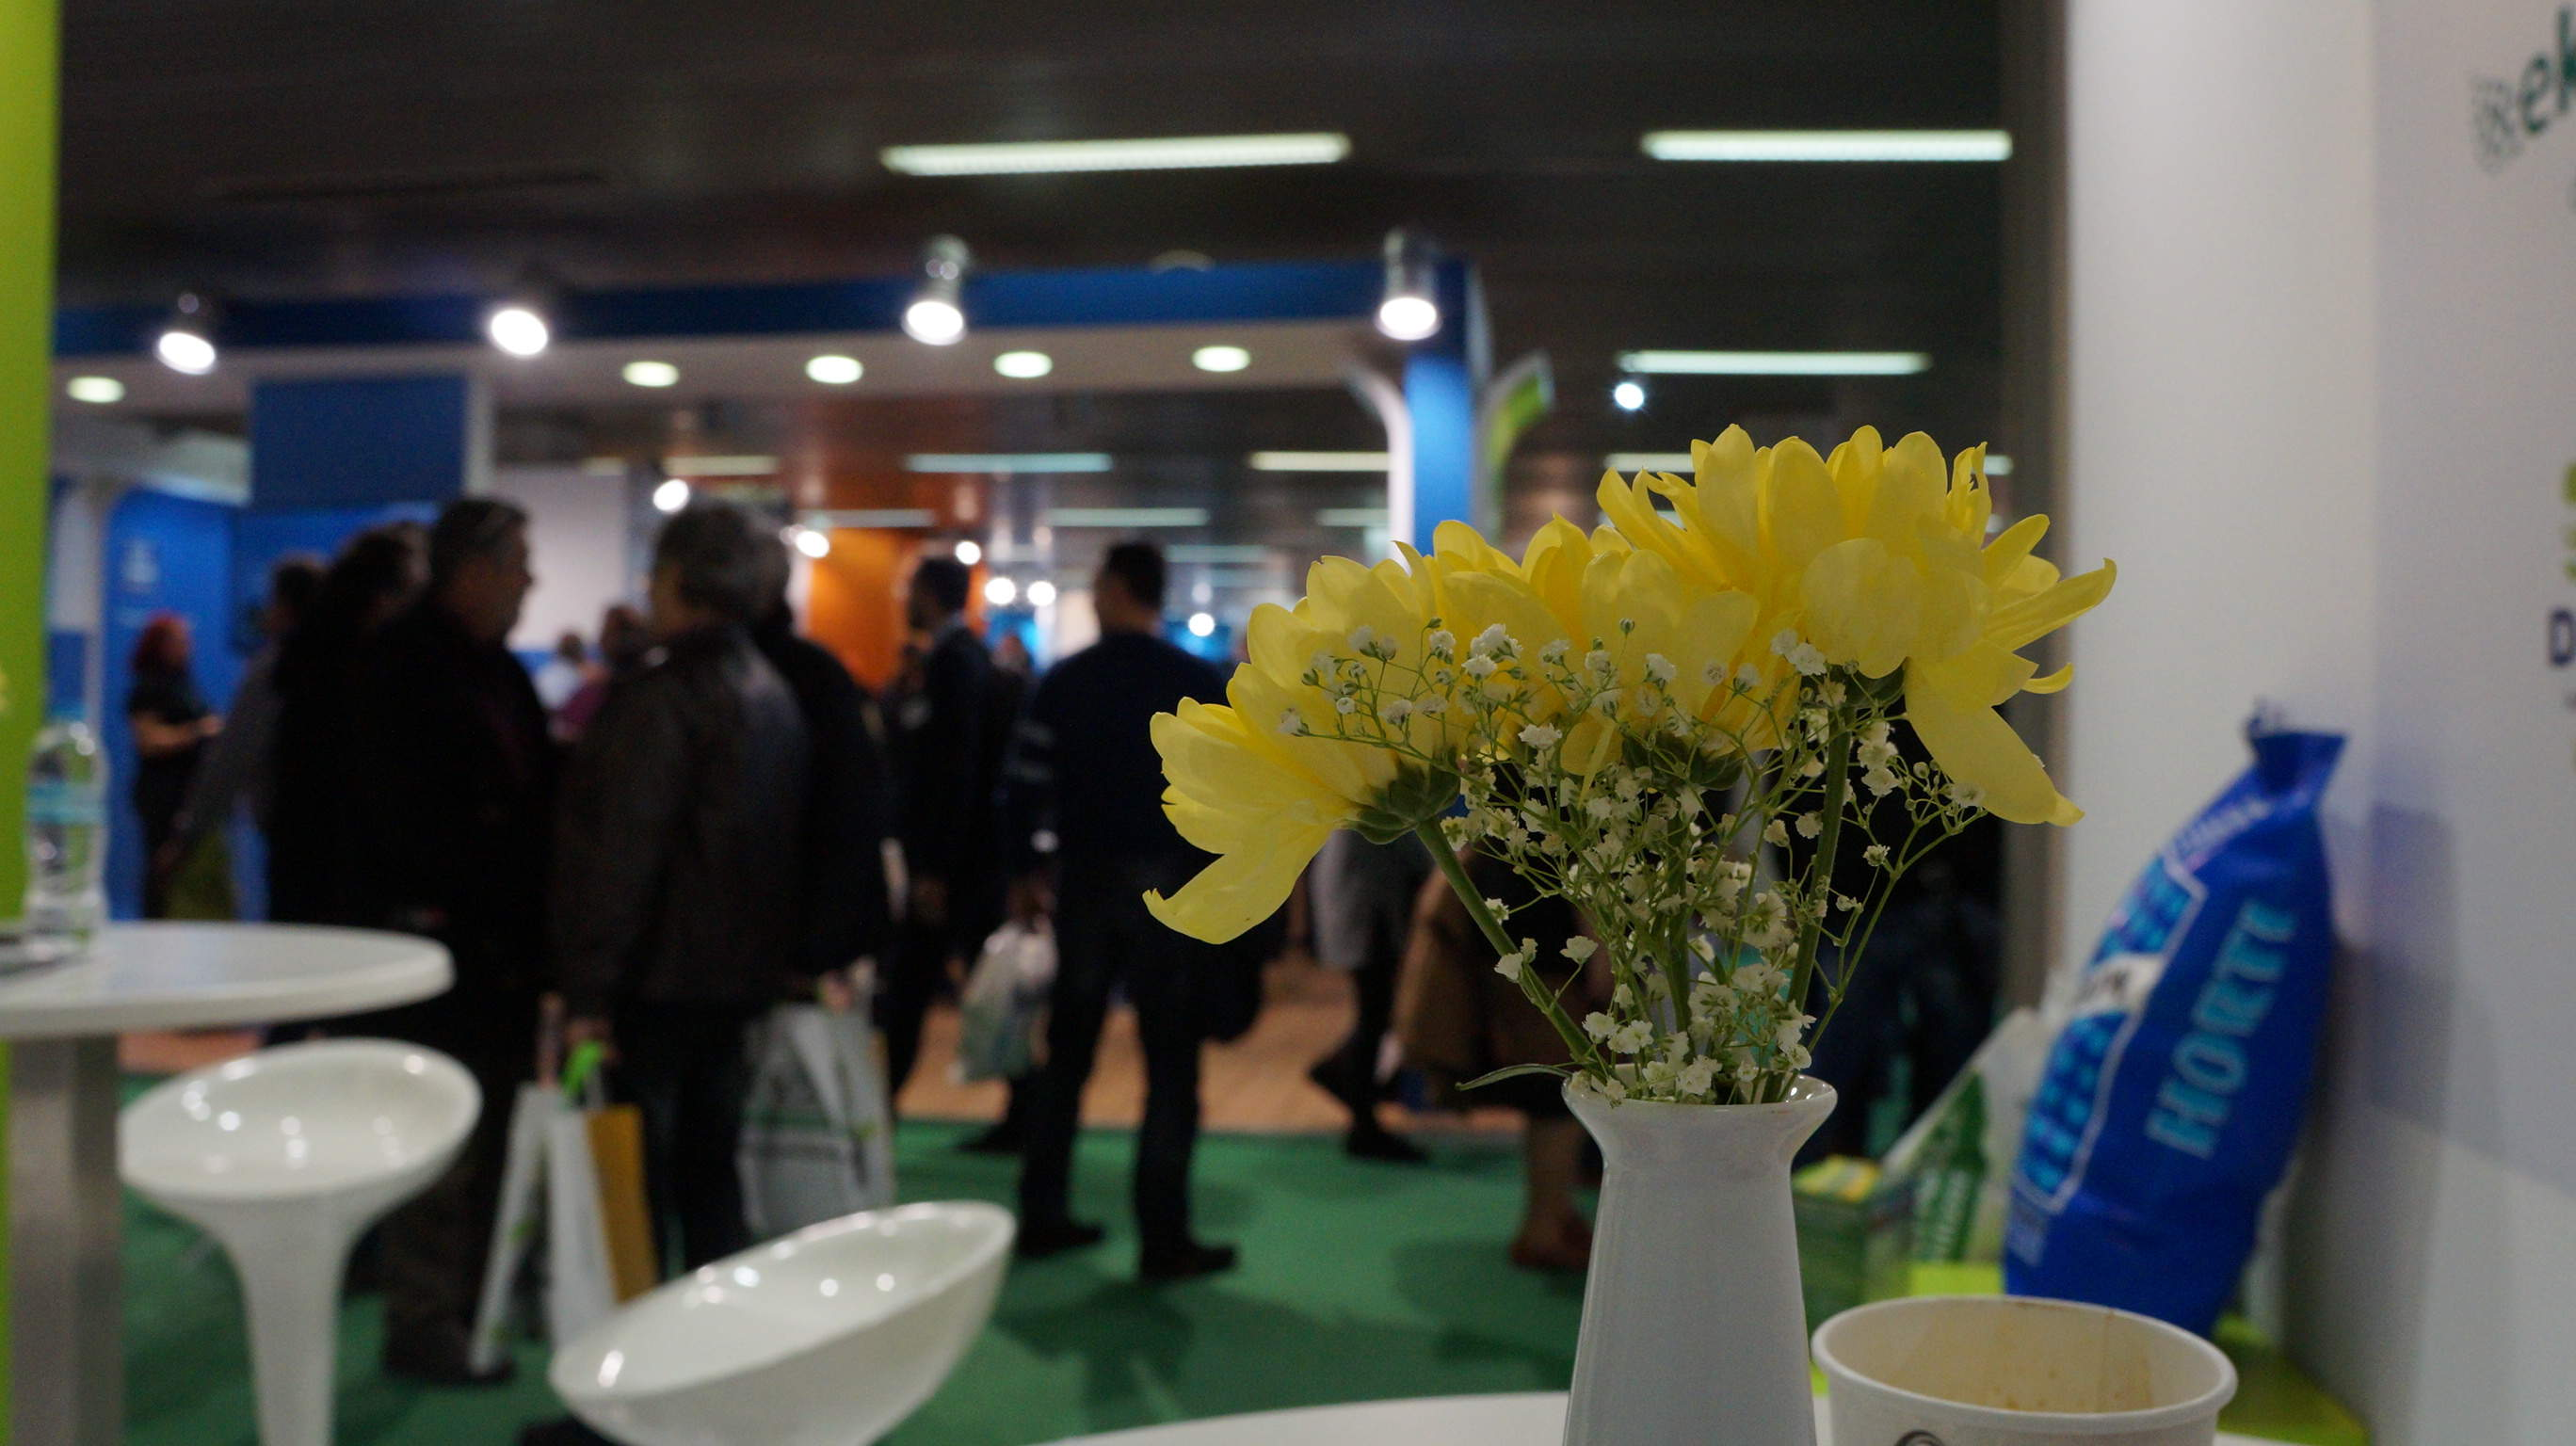 Images from our participation in AGROTICA 2018 fair in Thessaloniki – Greece.